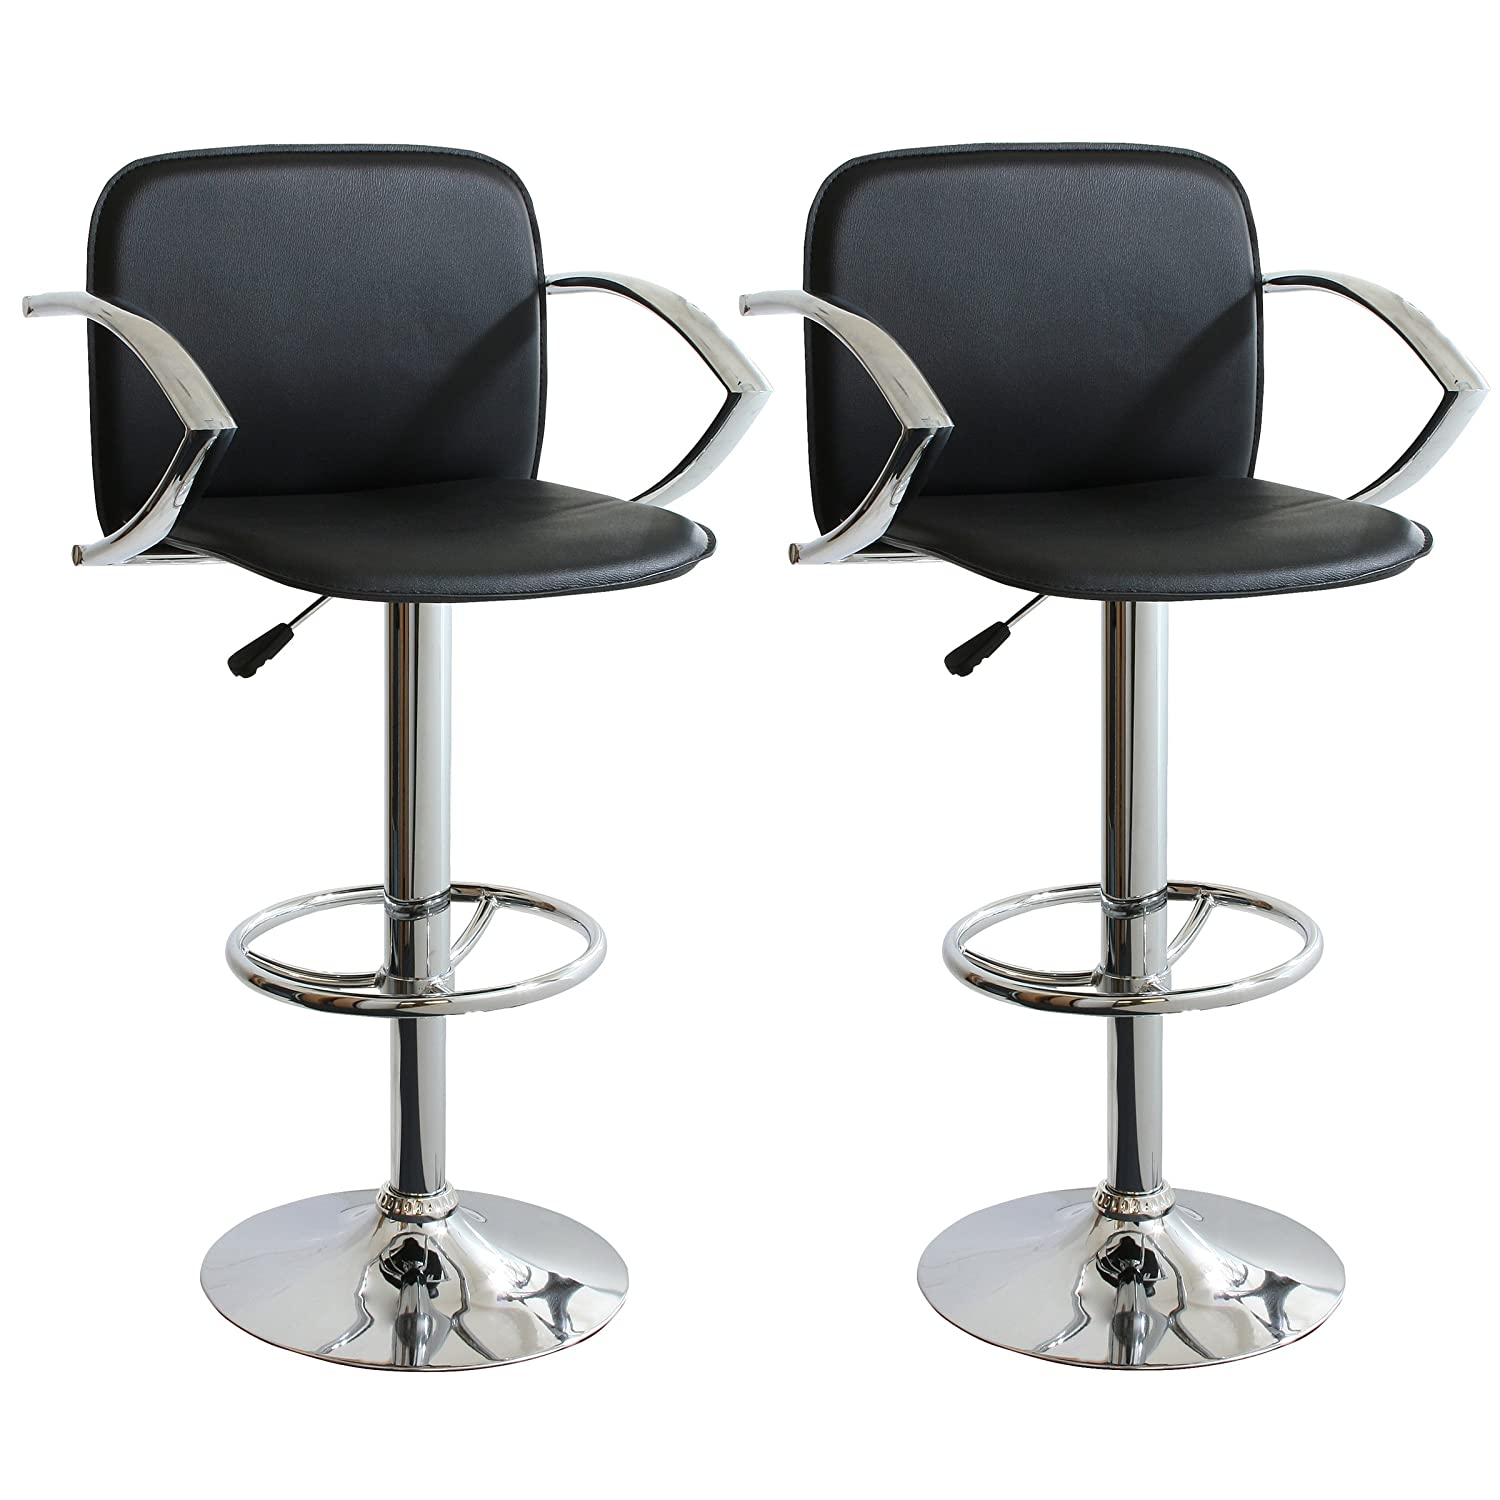 awesome height of bar stools images